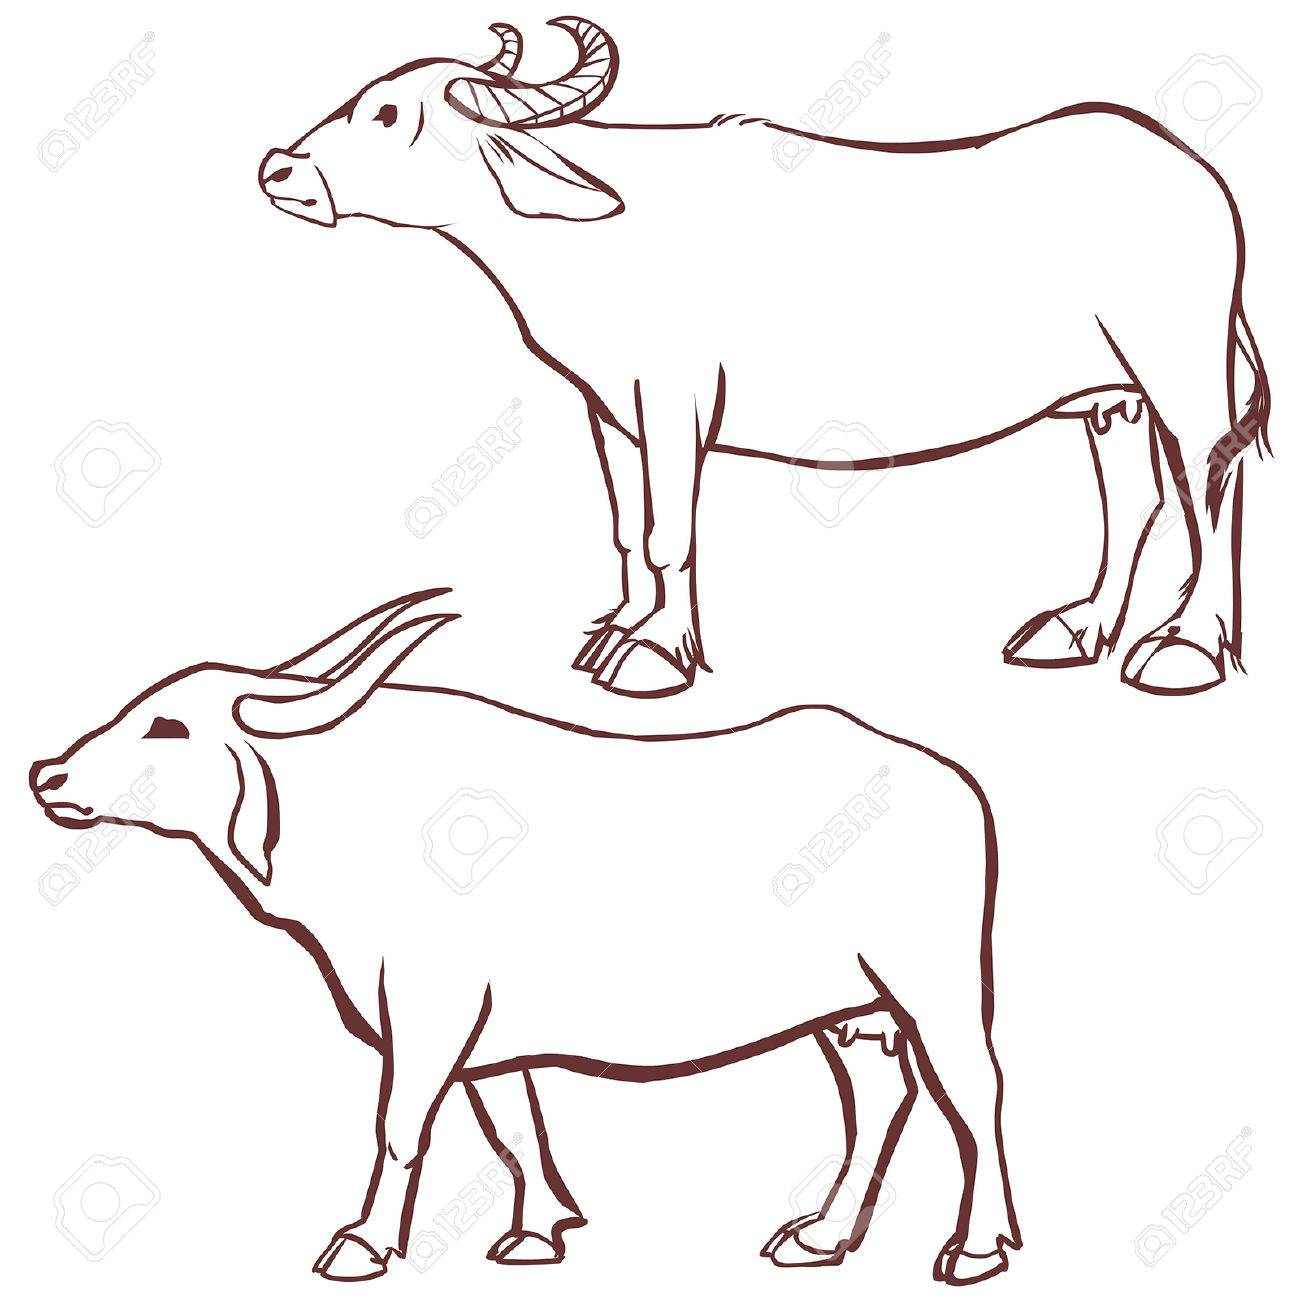 1300x1300 Buffalo Cow Outline. Vector Illustration On White Background